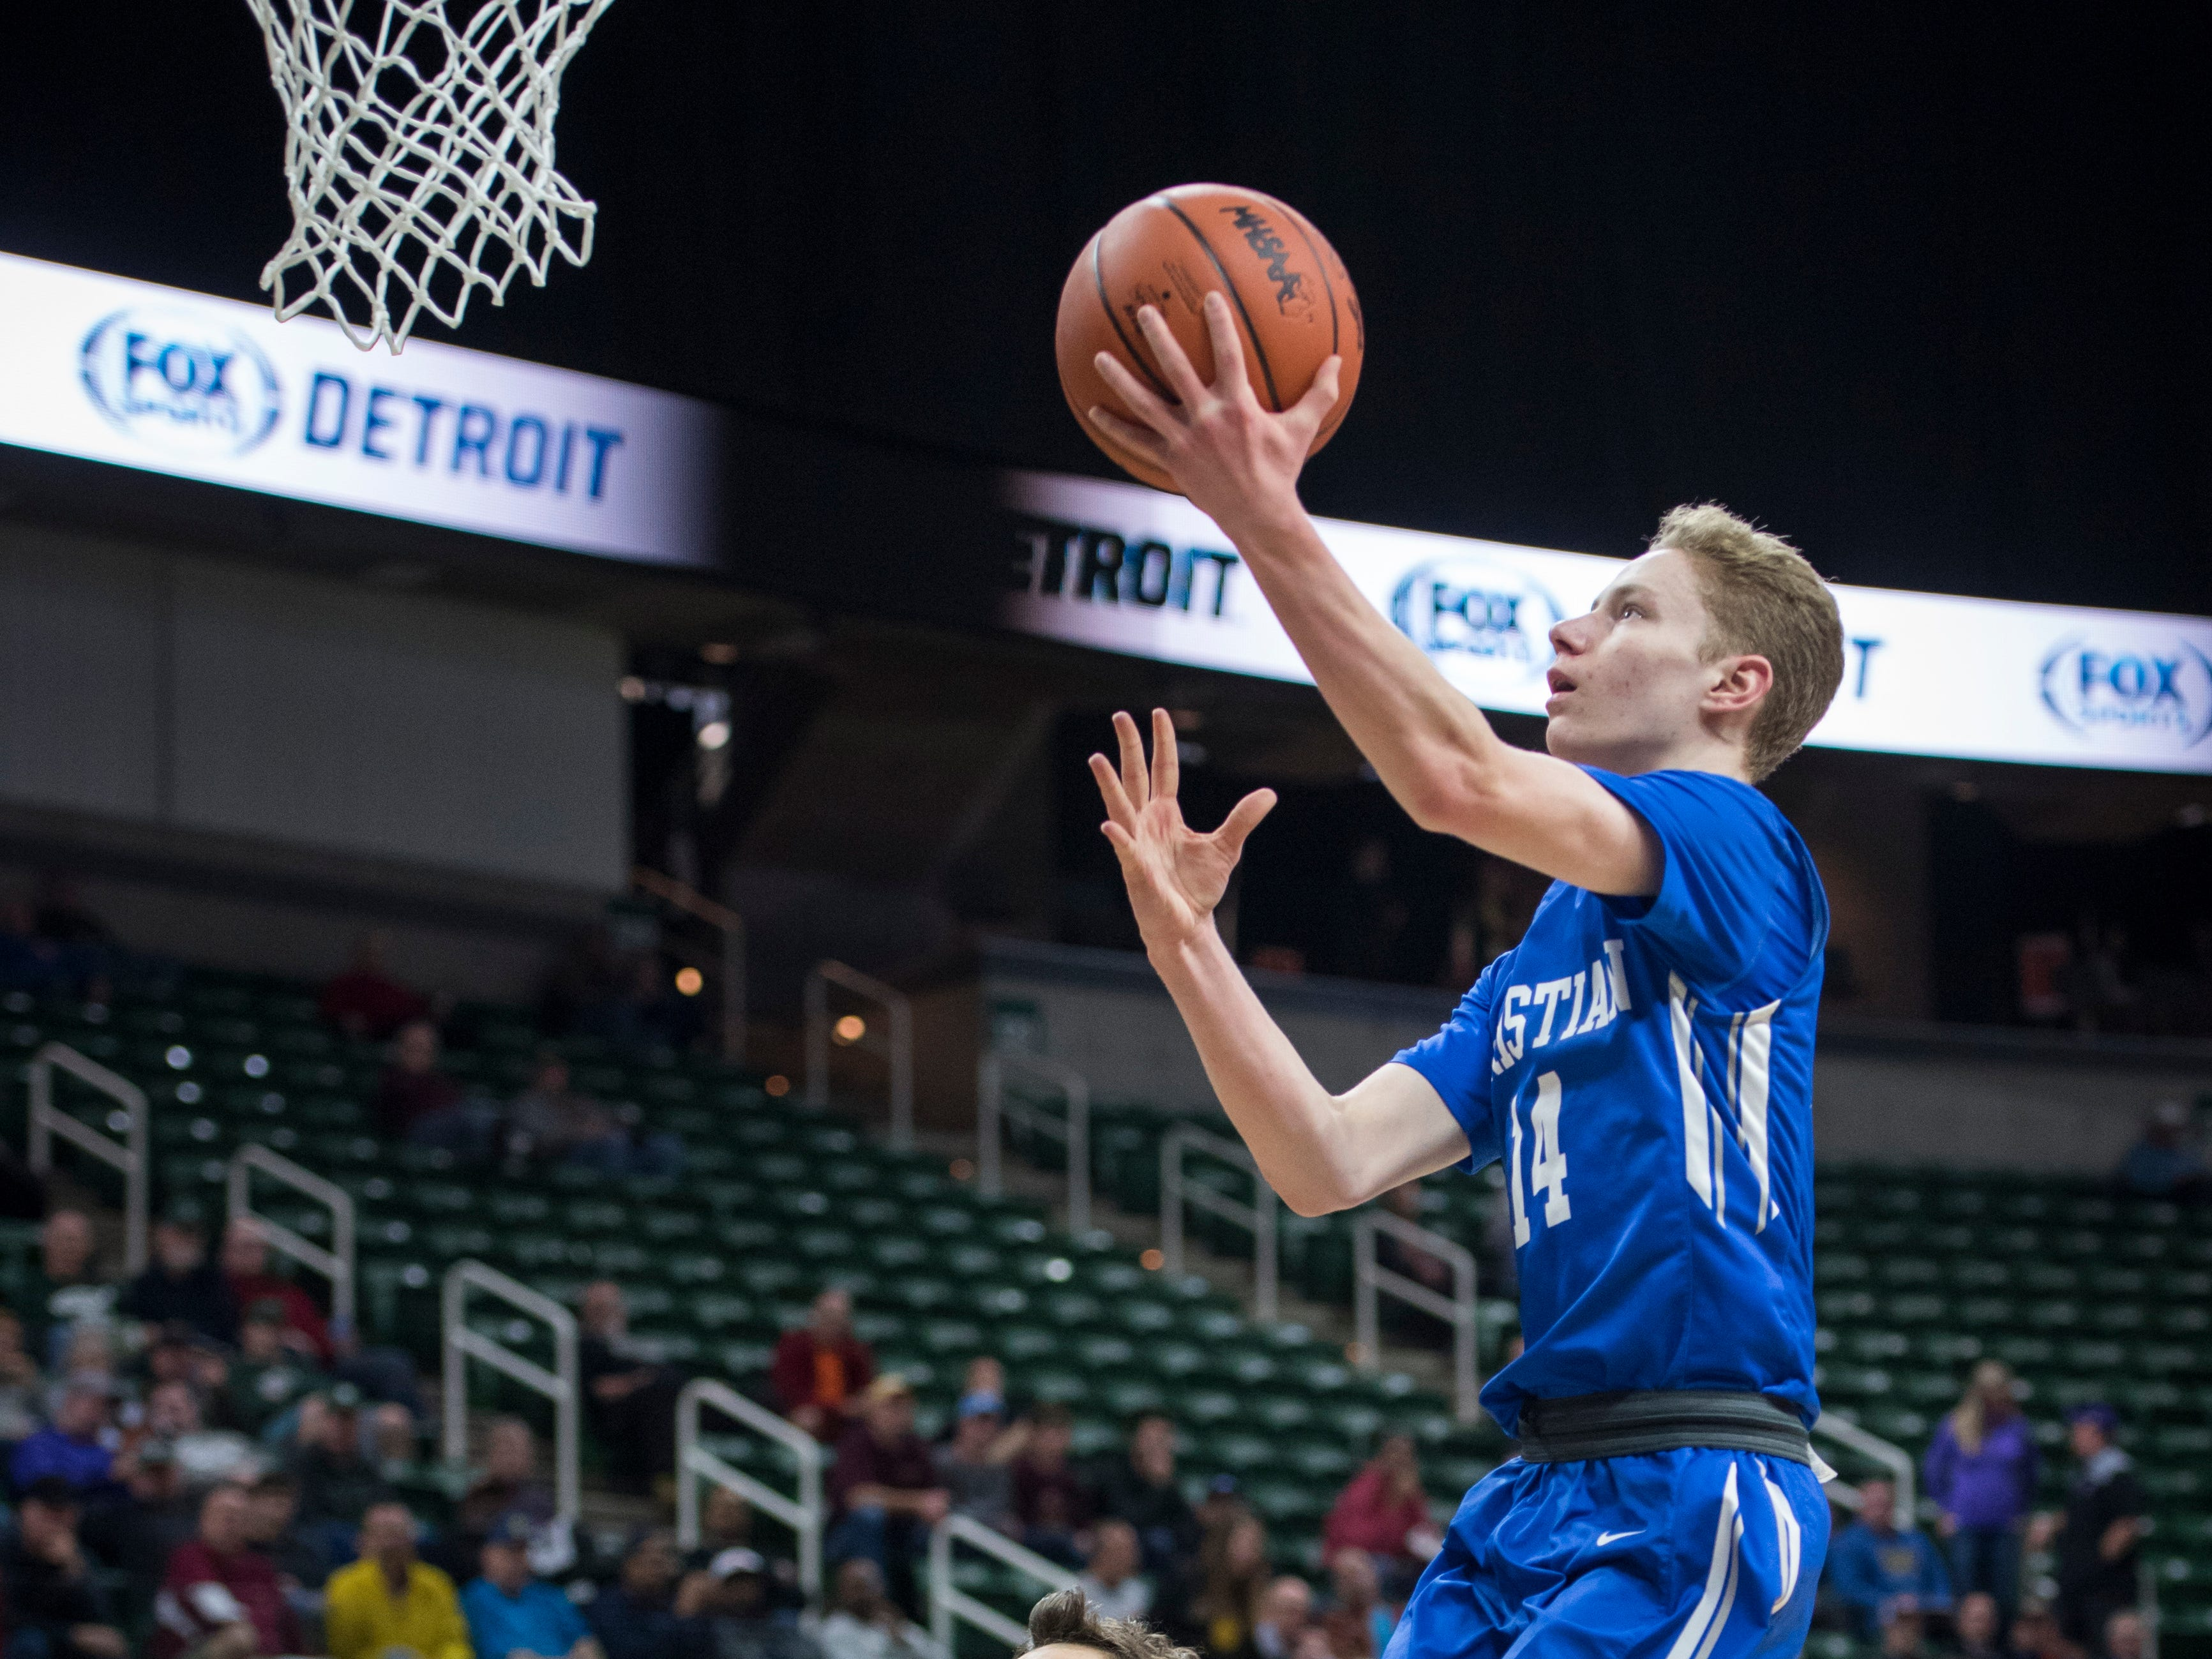 Southfield Christian's Noah Rheker shoots a layup in the second half. '